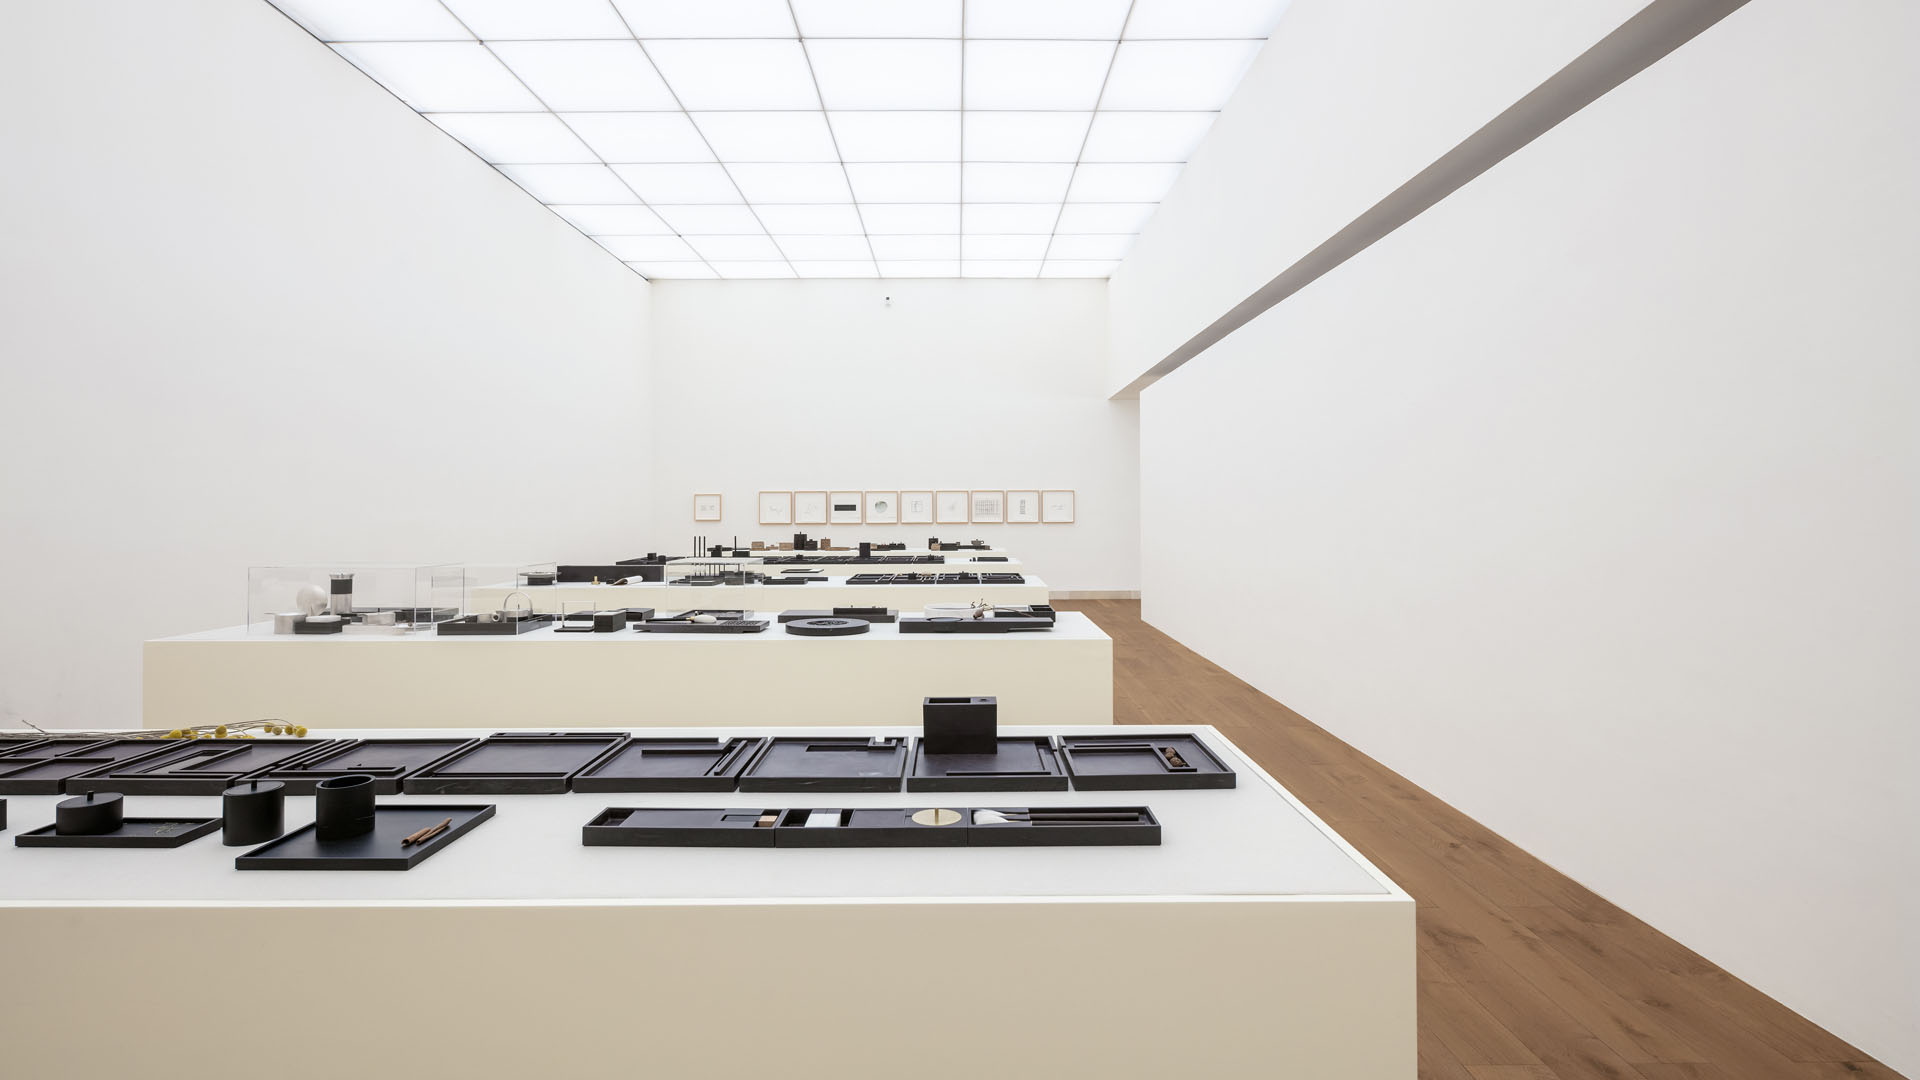 Ink stones of Chi Wing Lo, along with his architecture, sculptures, interior, furniture, objects and drawing, with a creation span of over 30 years, were presented in a solo exhibition titled ESSENCE CHI WING LO at the Alvaro Siza's China Design Museum in Hangzhou in 2019.